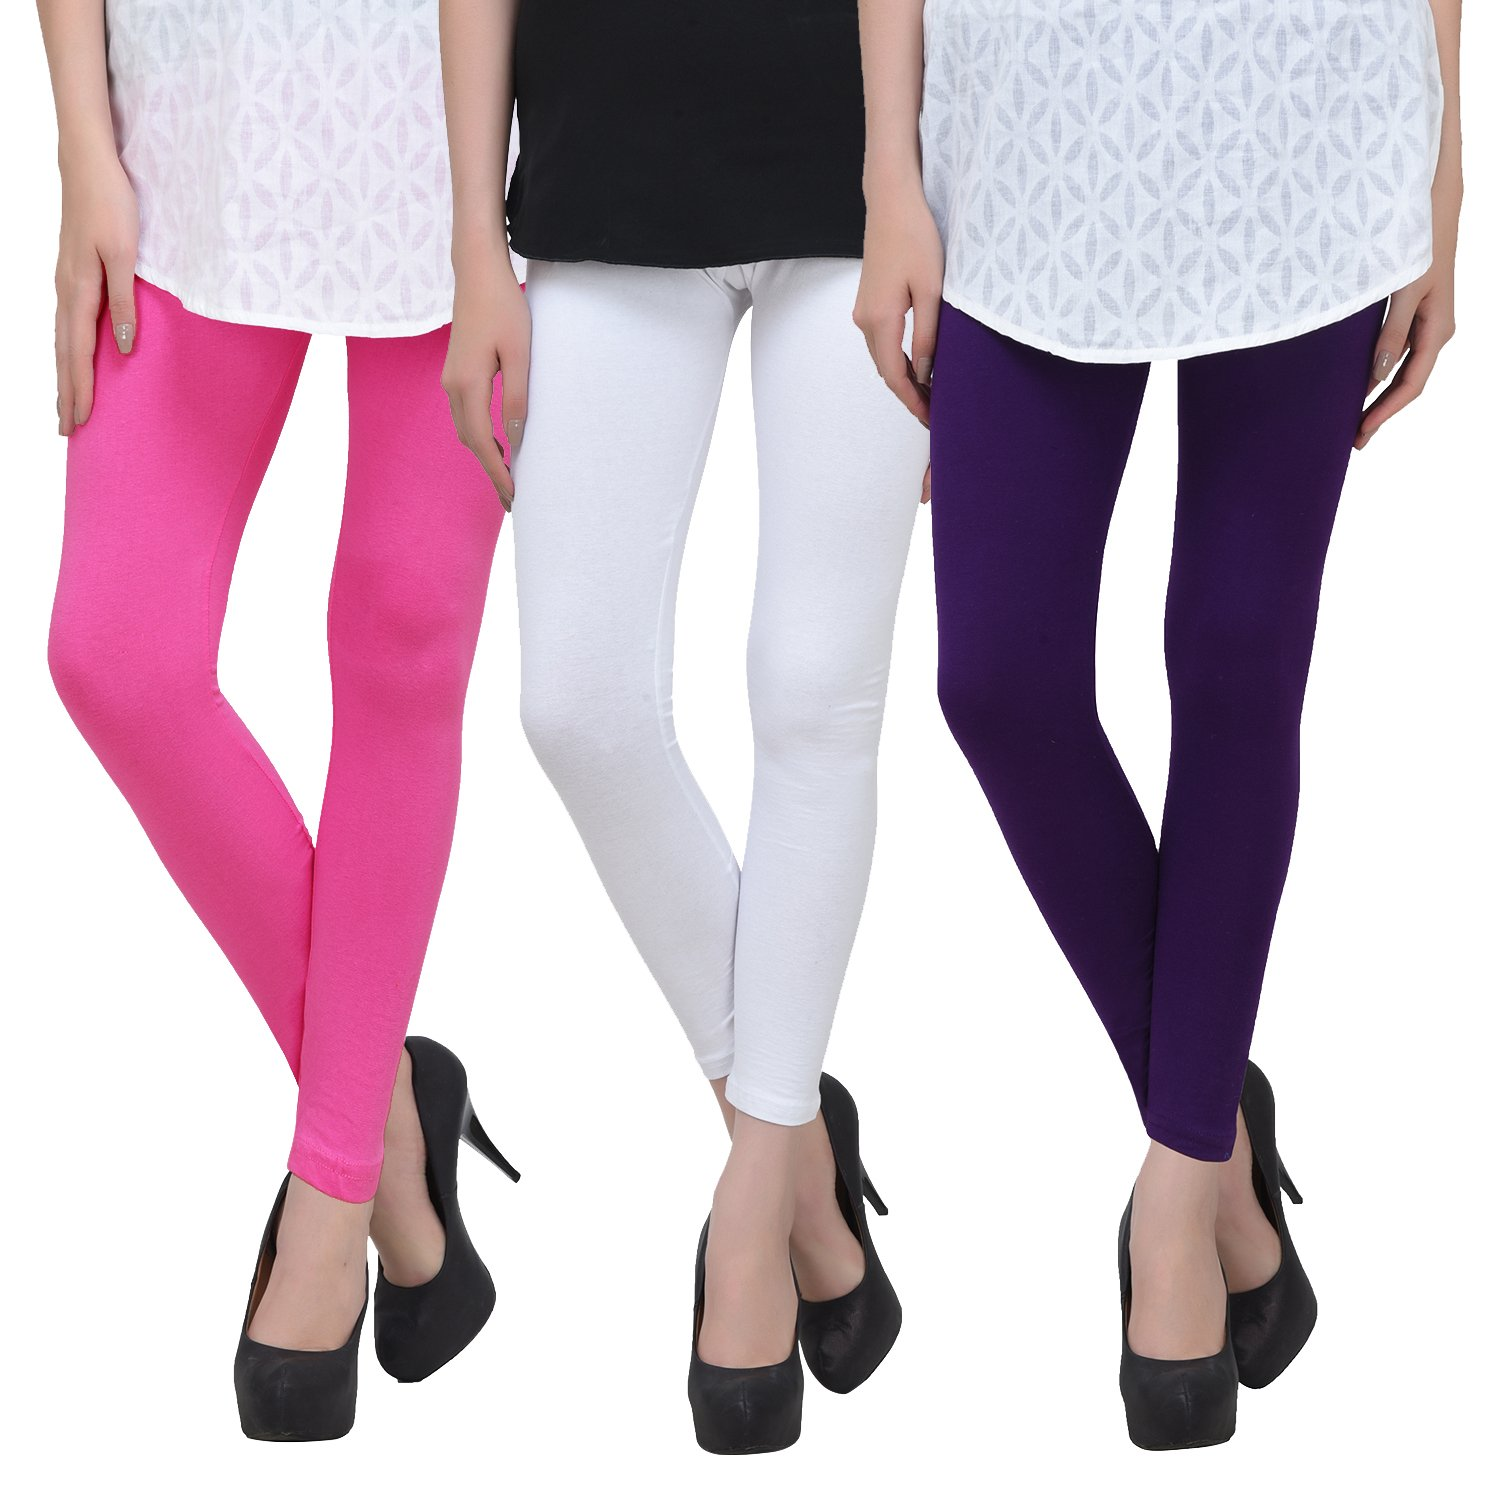 d4bc003316d95 Livener Multi Color Cotton Leggings - Ankle Length (Pack of 3): Amazon.in:  Clothing & Accessories